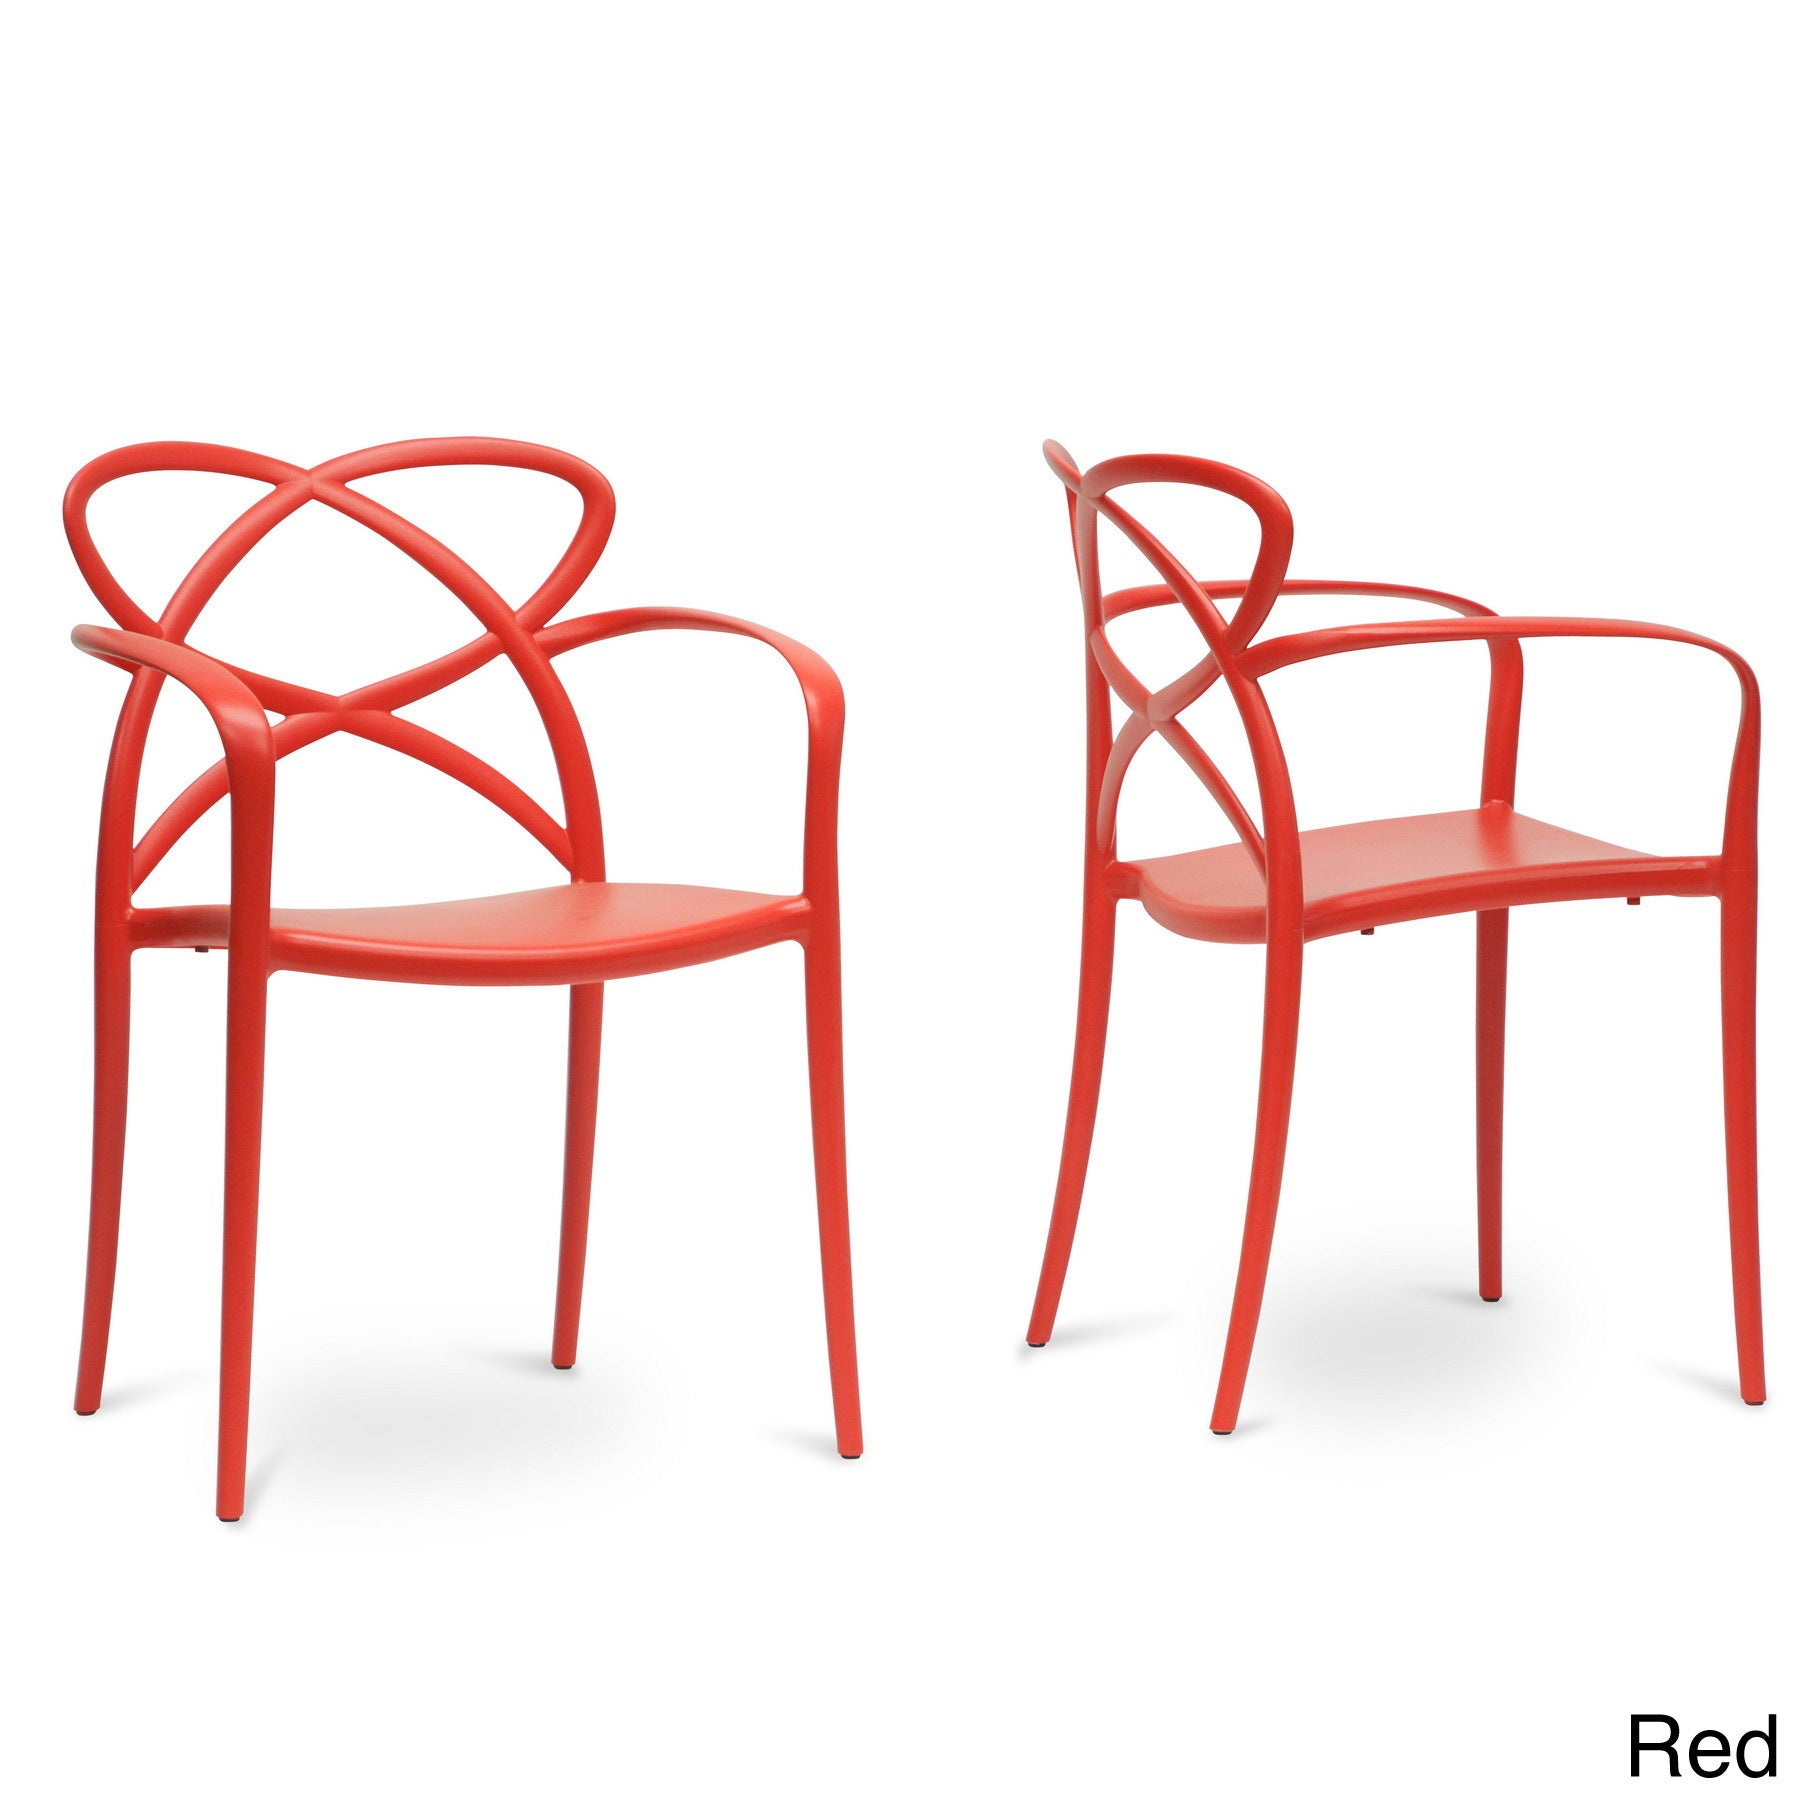 Baxton Studio Huxx Plastic Stackable Modern Dining Chair Set of 2